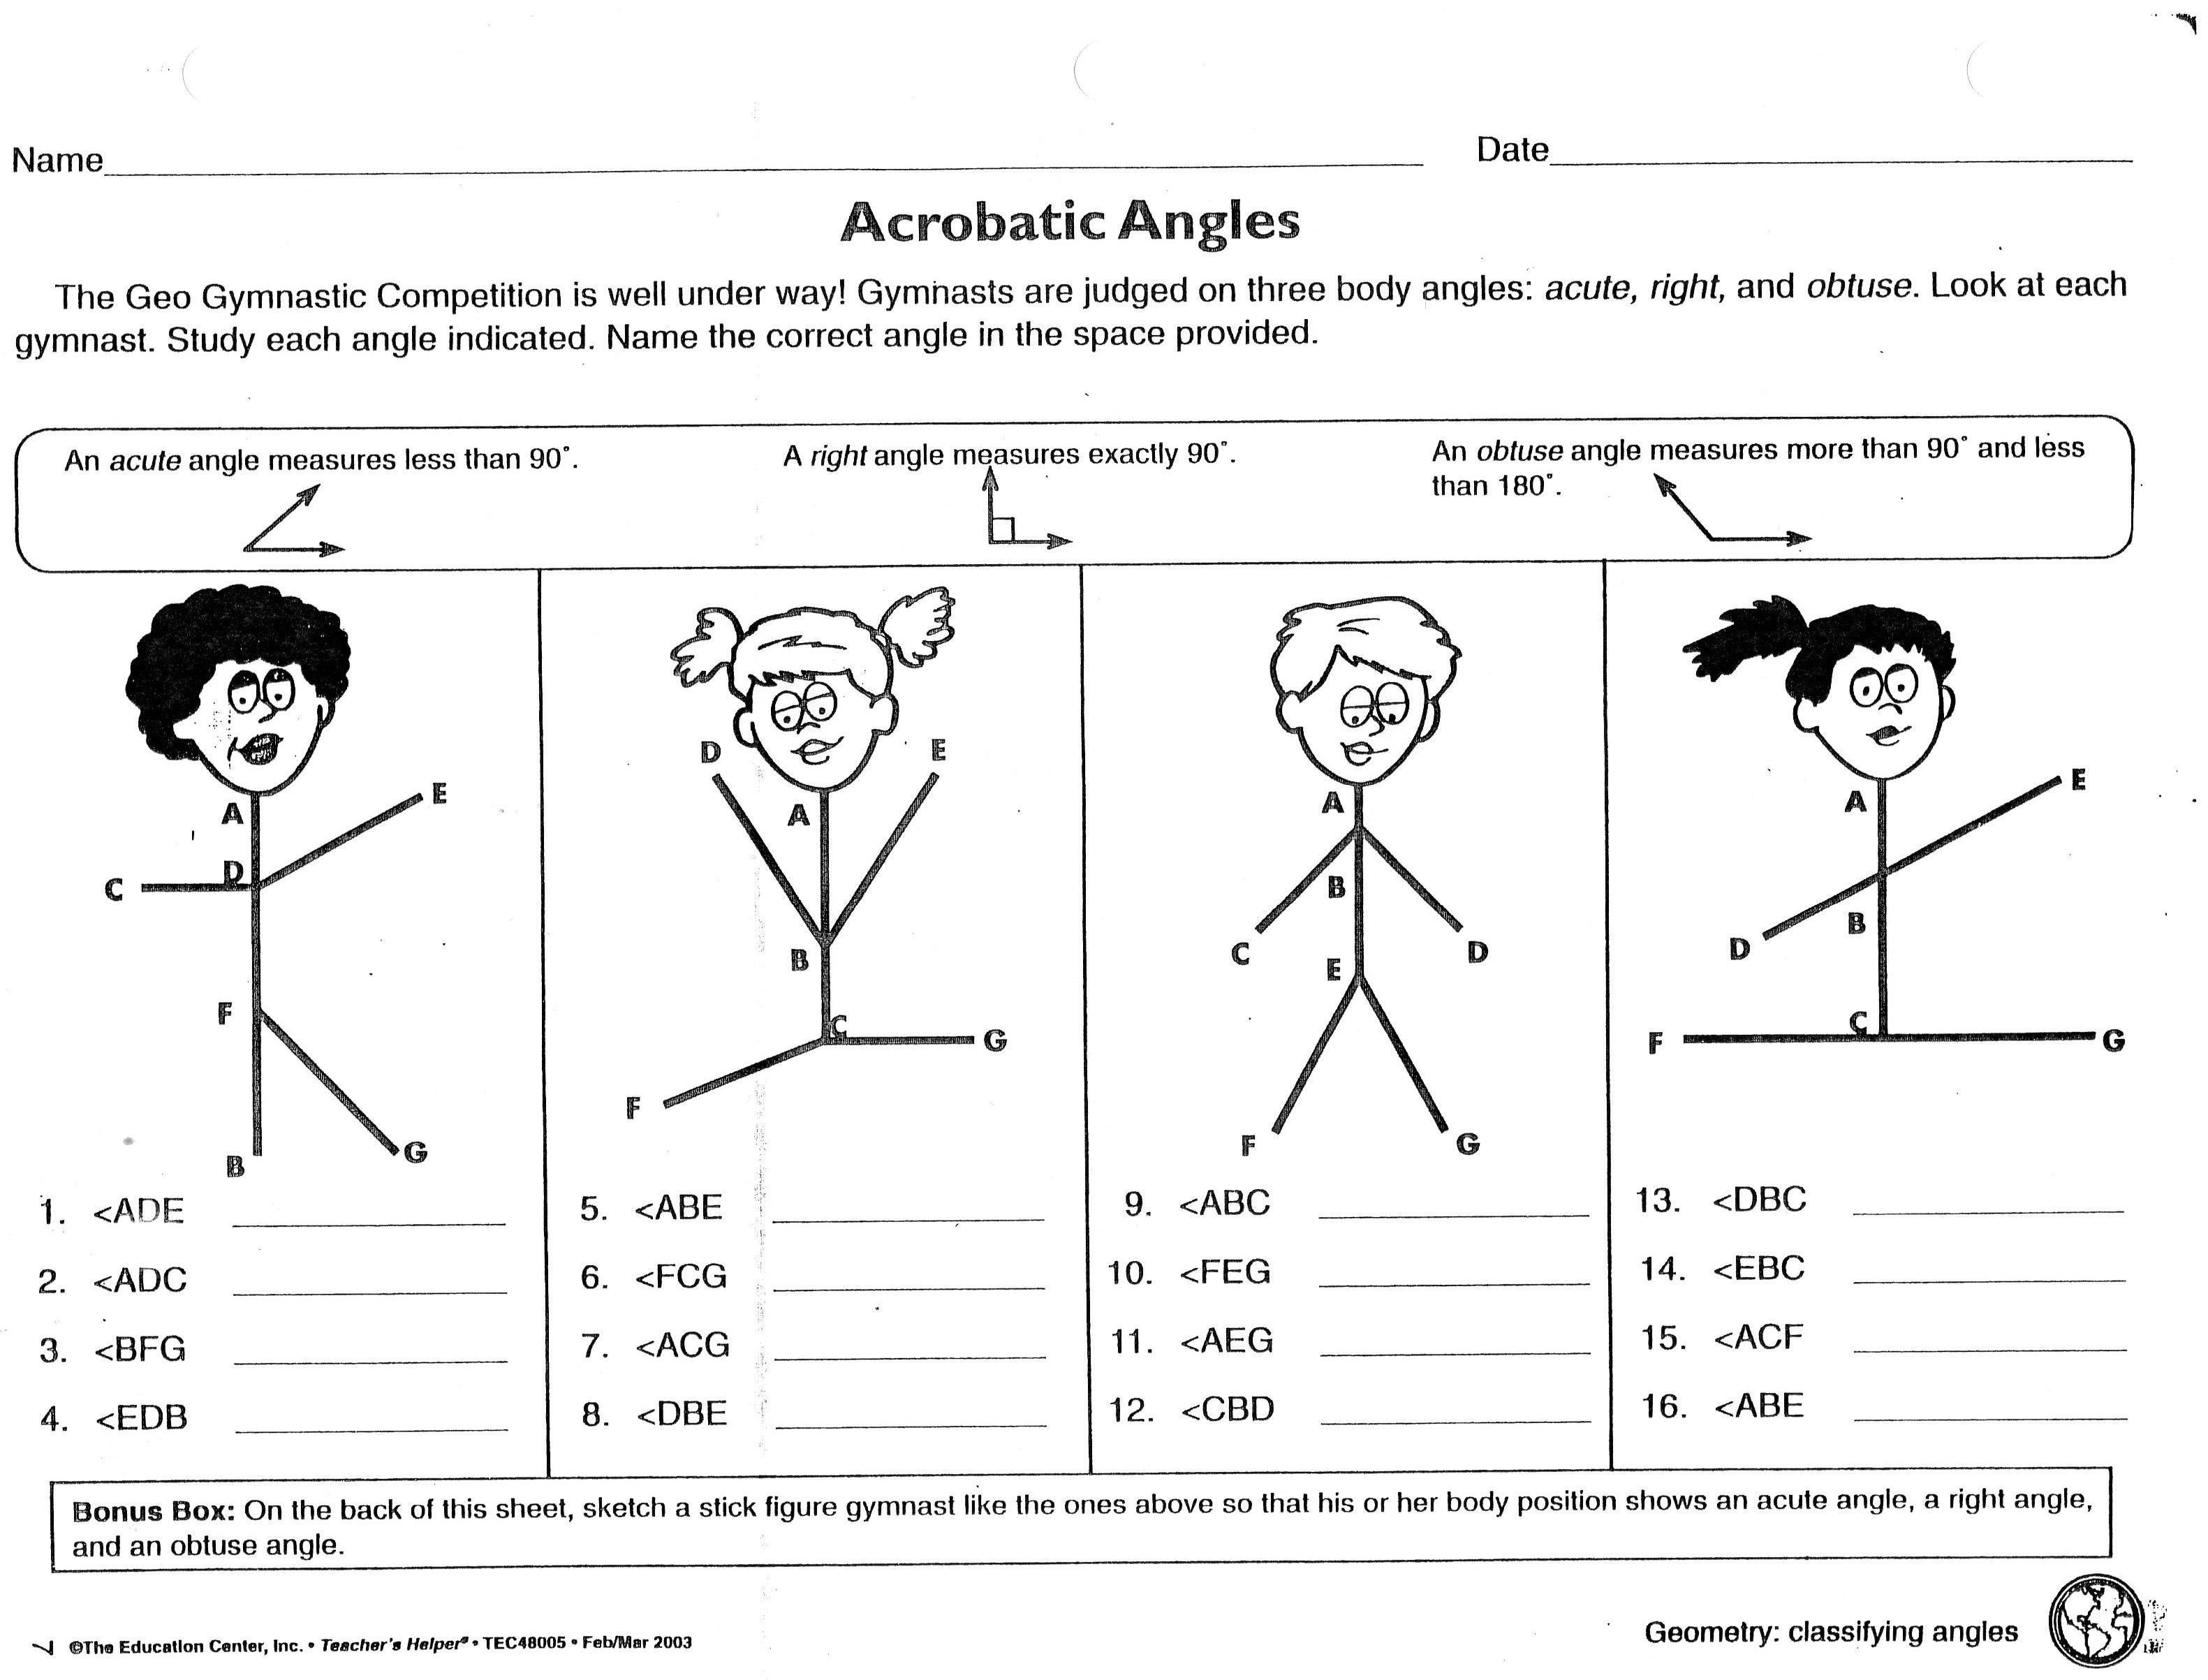 Worksheets Lines And Angles Worksheet phase iii acrobatic angles worksheet jpg